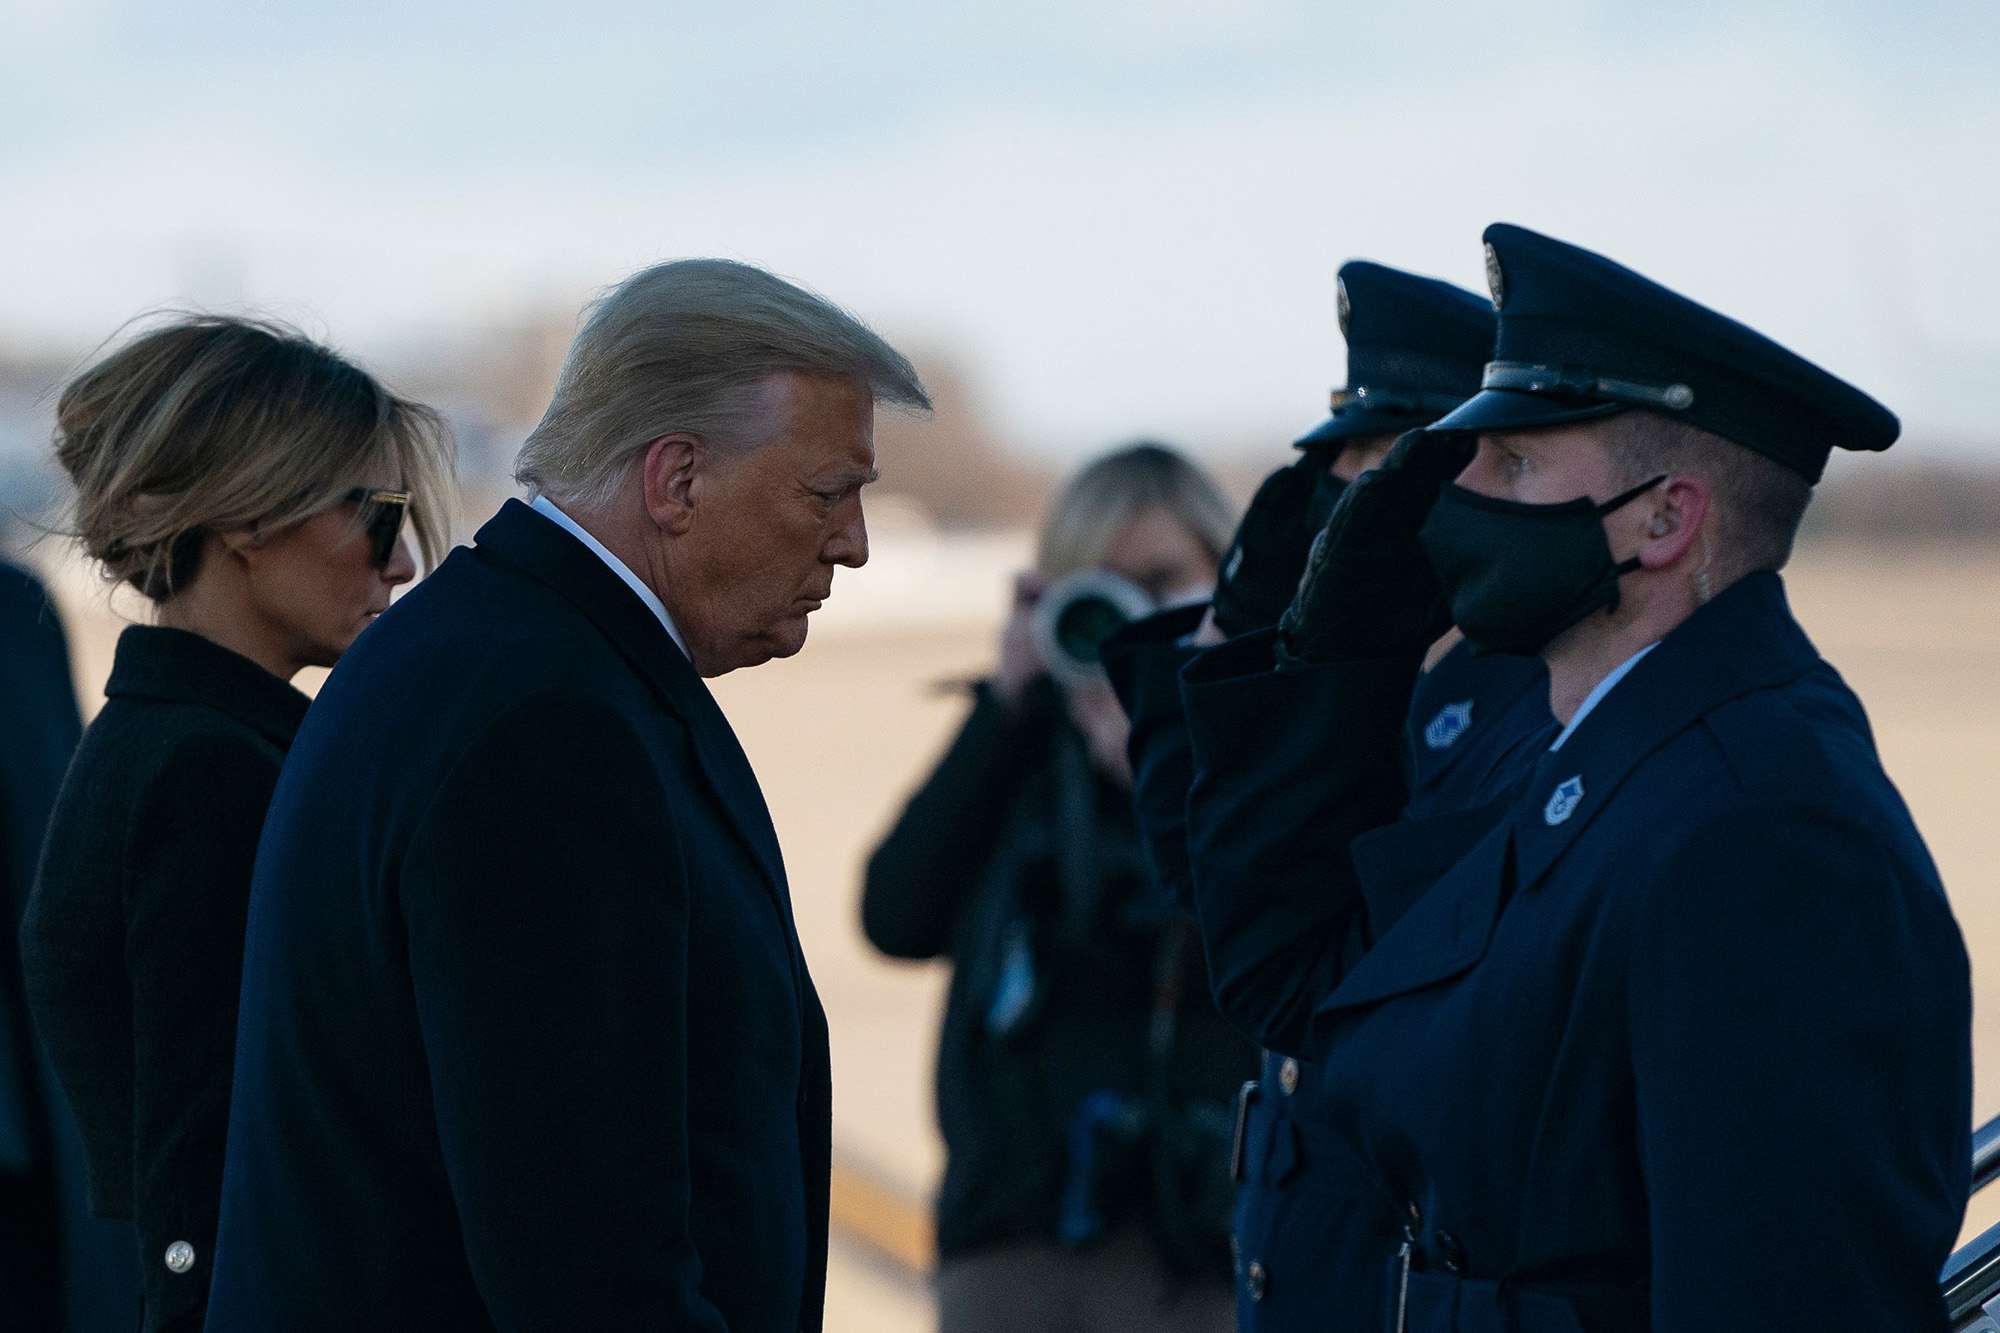 Outgoing President Donald Trump and first lady Melania Trump step out of Marine One at Joint Base Andrews in Maryland on Jan. 20, 2021. (Alex Edelman/AFP via Getty Images)